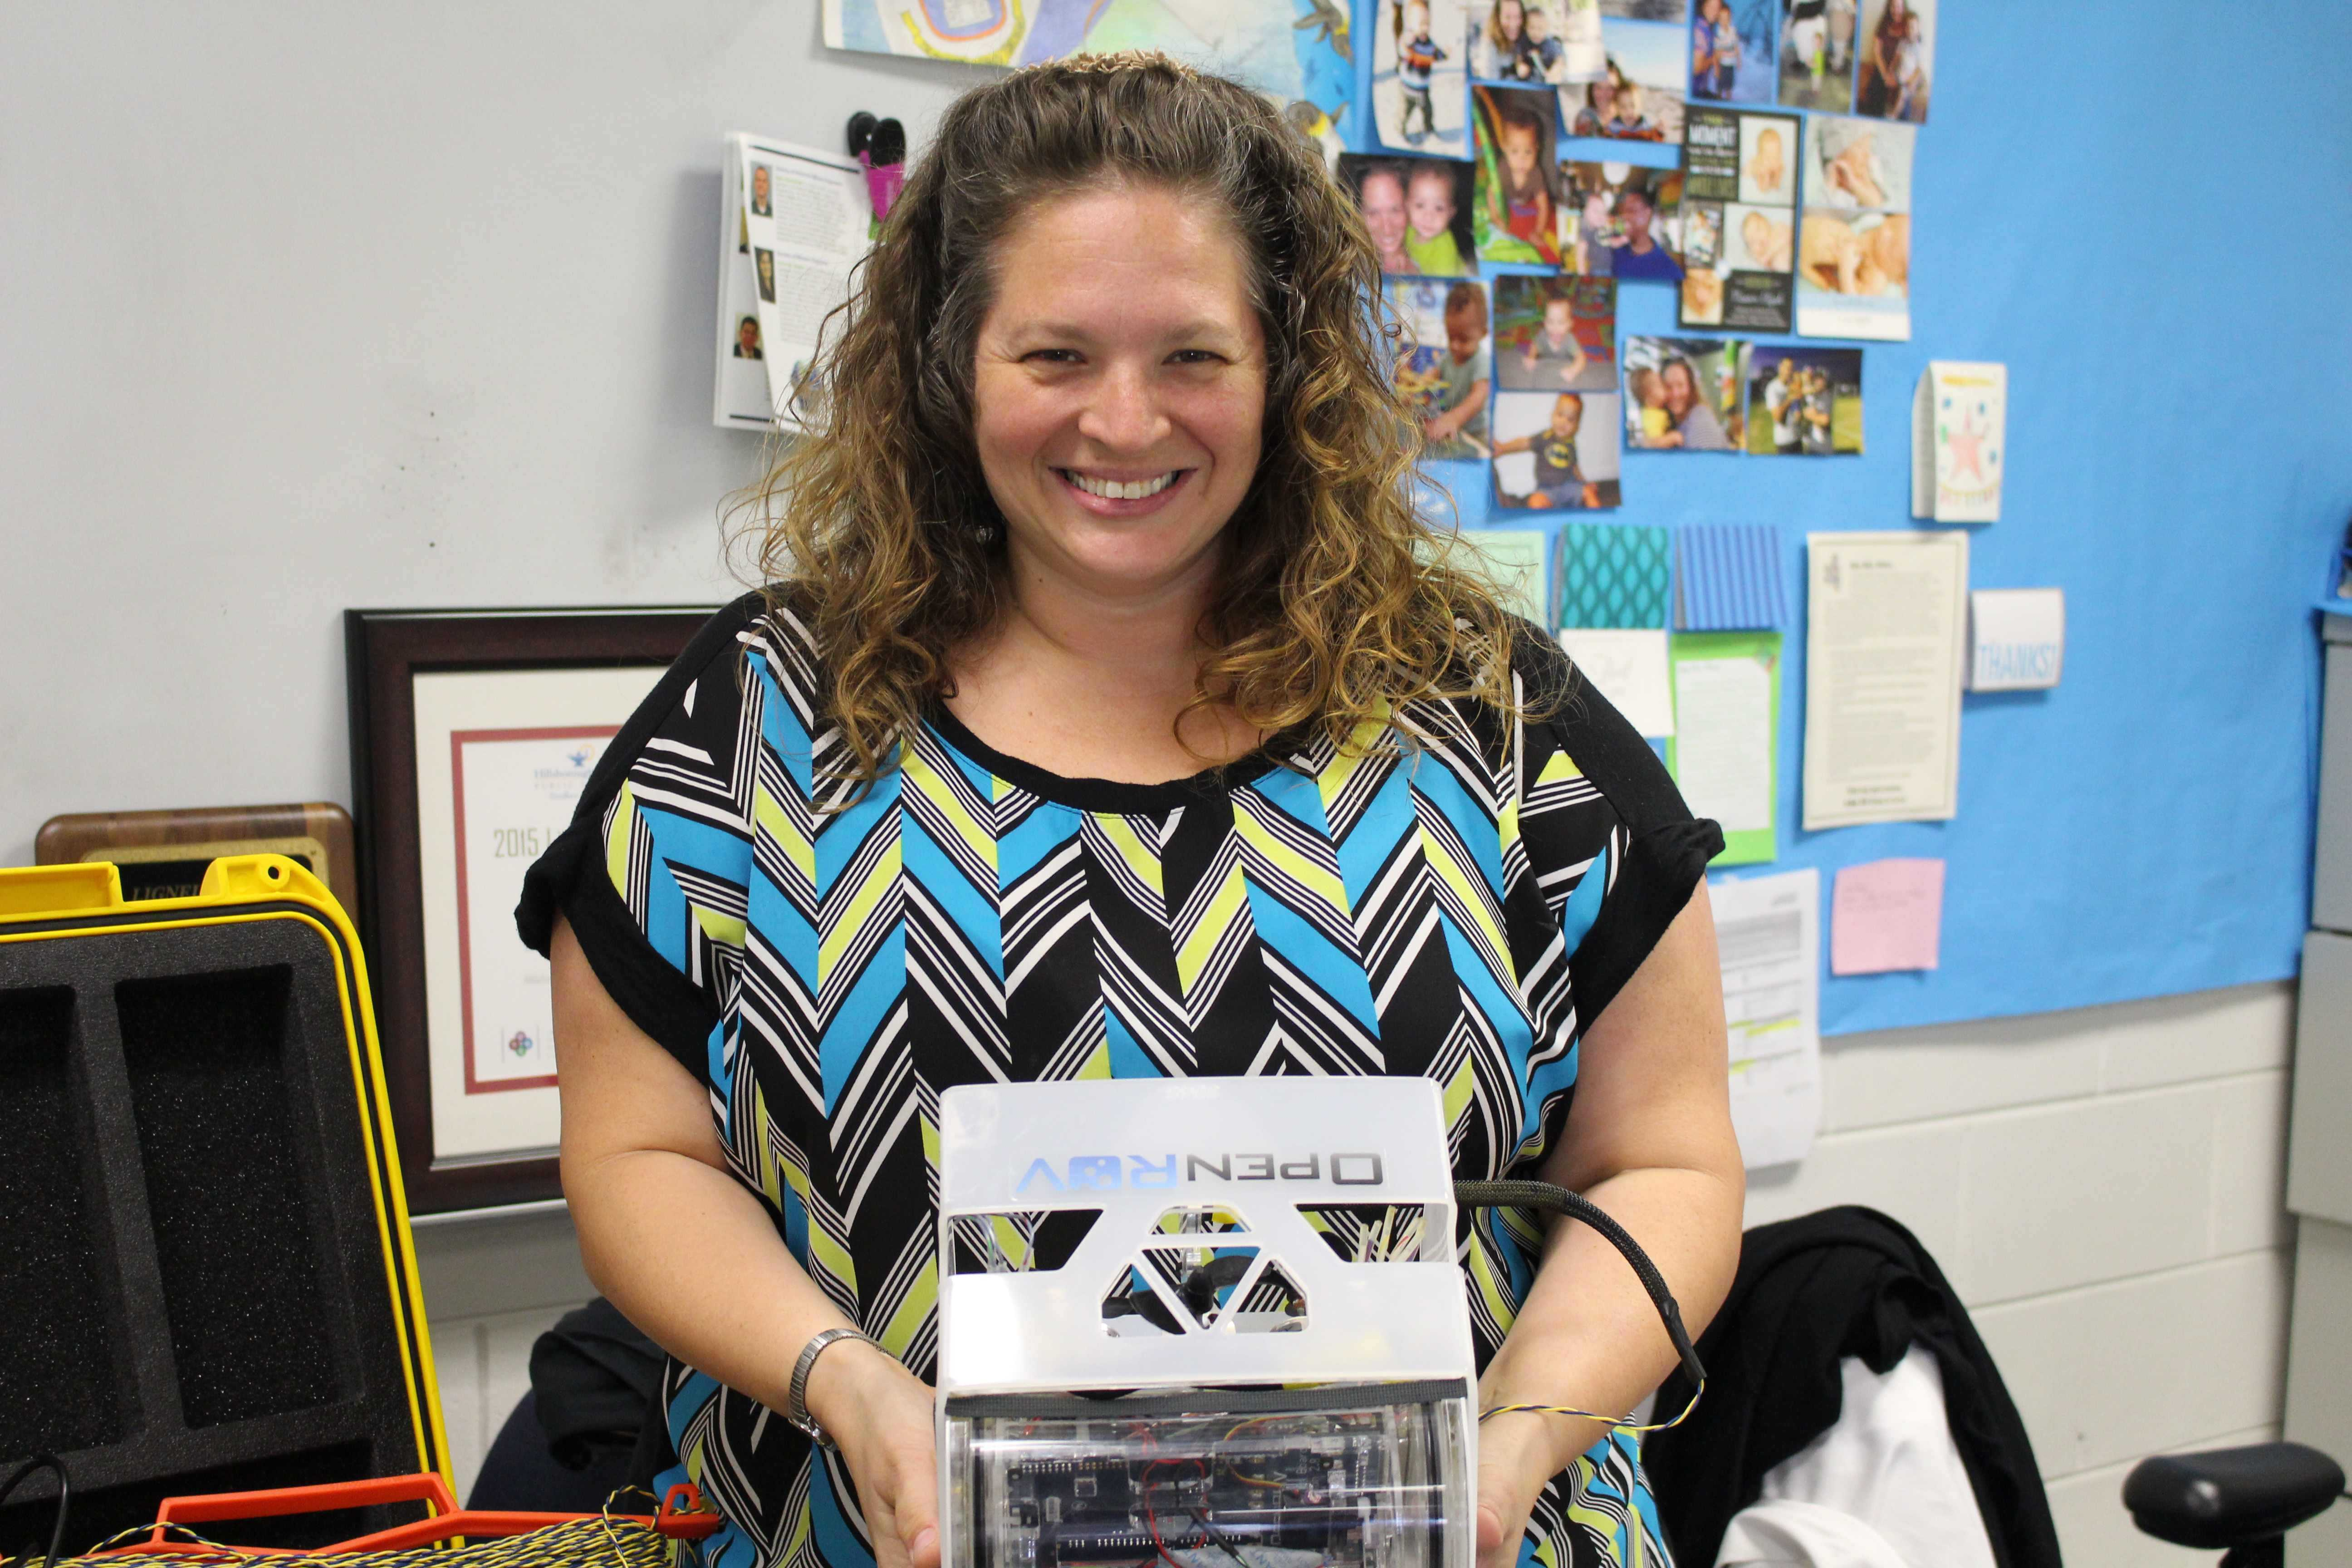 Here, IB Biology teacher Tiffany Oliver is featured with an underwater ROV robot she built during a STEM camp.